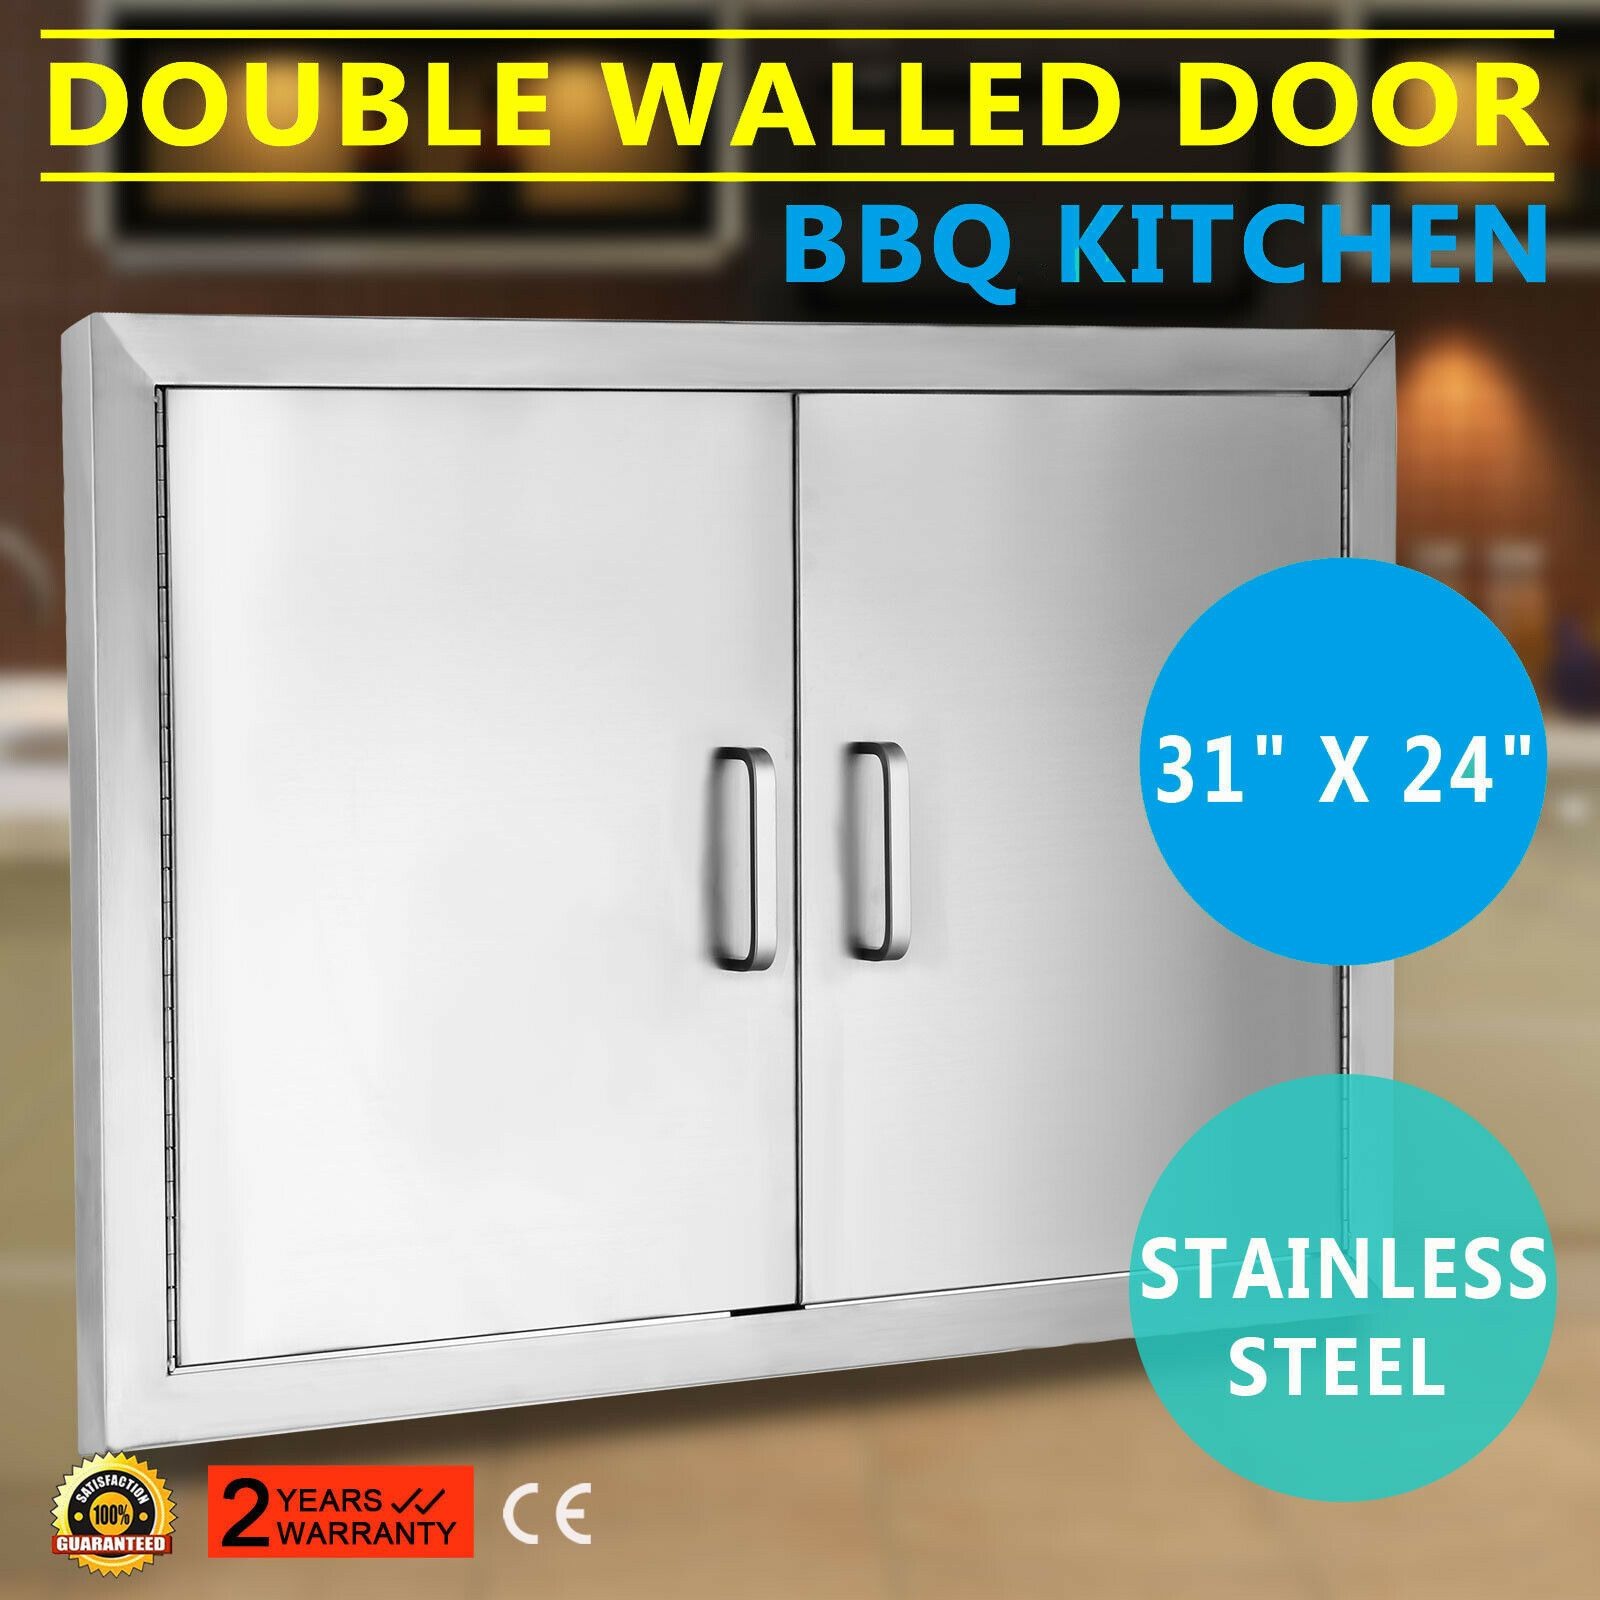 Outdoor Kitchen Bbq Island 304 Stainless Steel Double Access Door 31 Usa In 2020 With Images Vertical Storage Bbq Island Storage